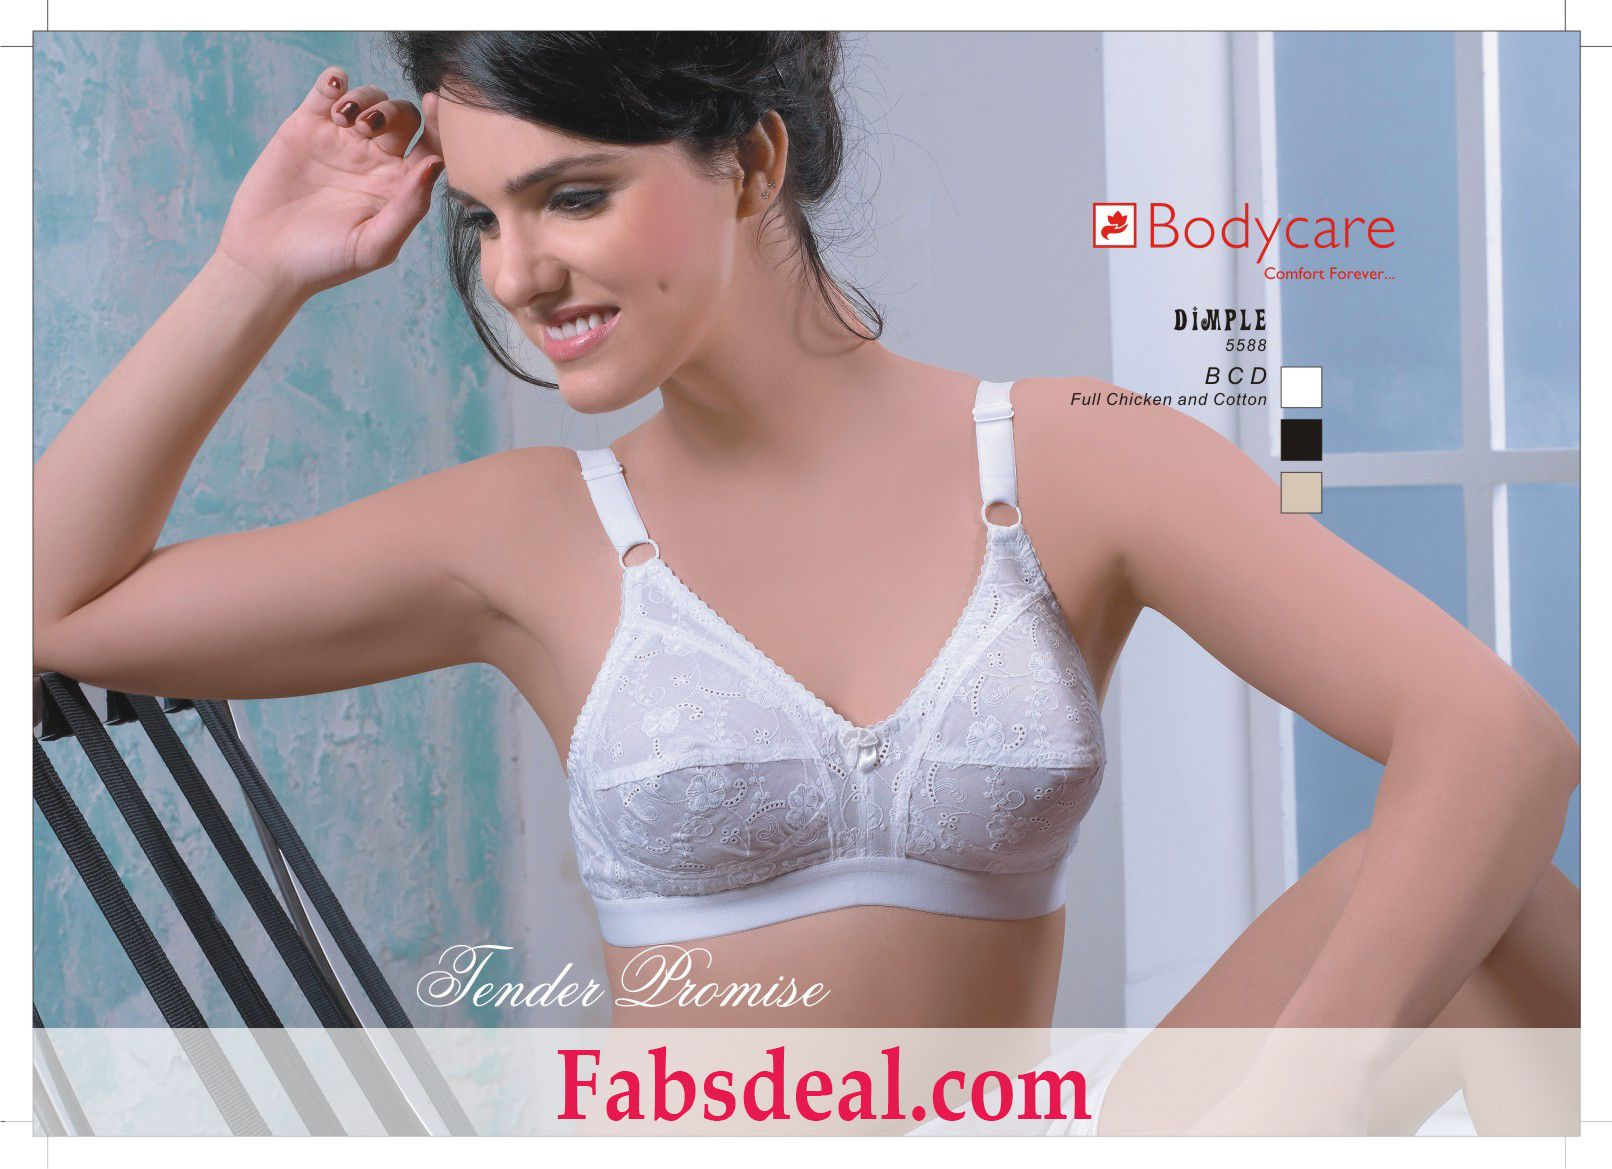 a0b6b99bc24 Designed for comfortable support and ease